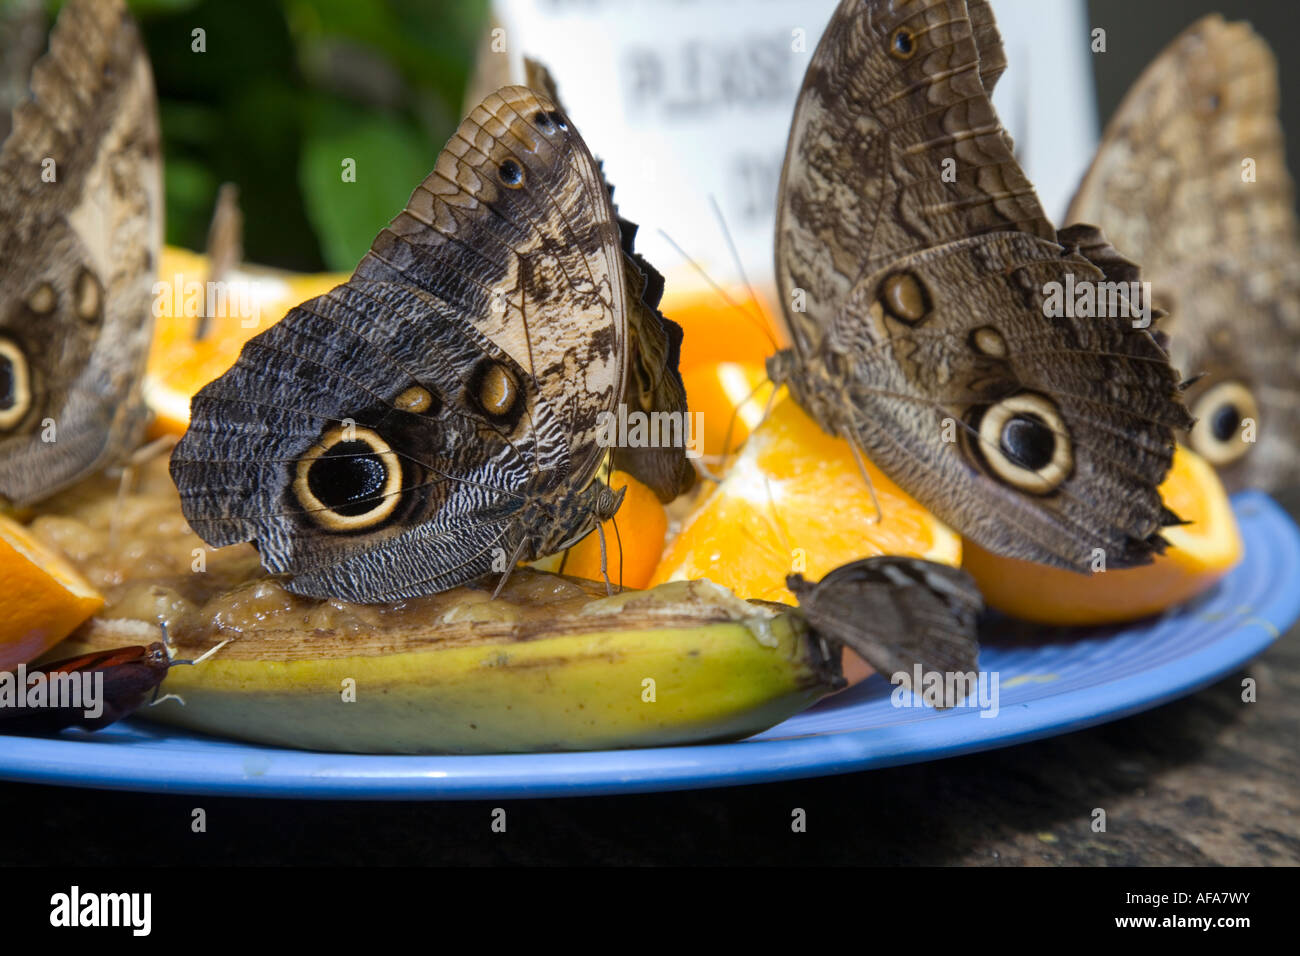 Feeding Butterfly Amazing Butterfly from all over the World feeding - Stock Image